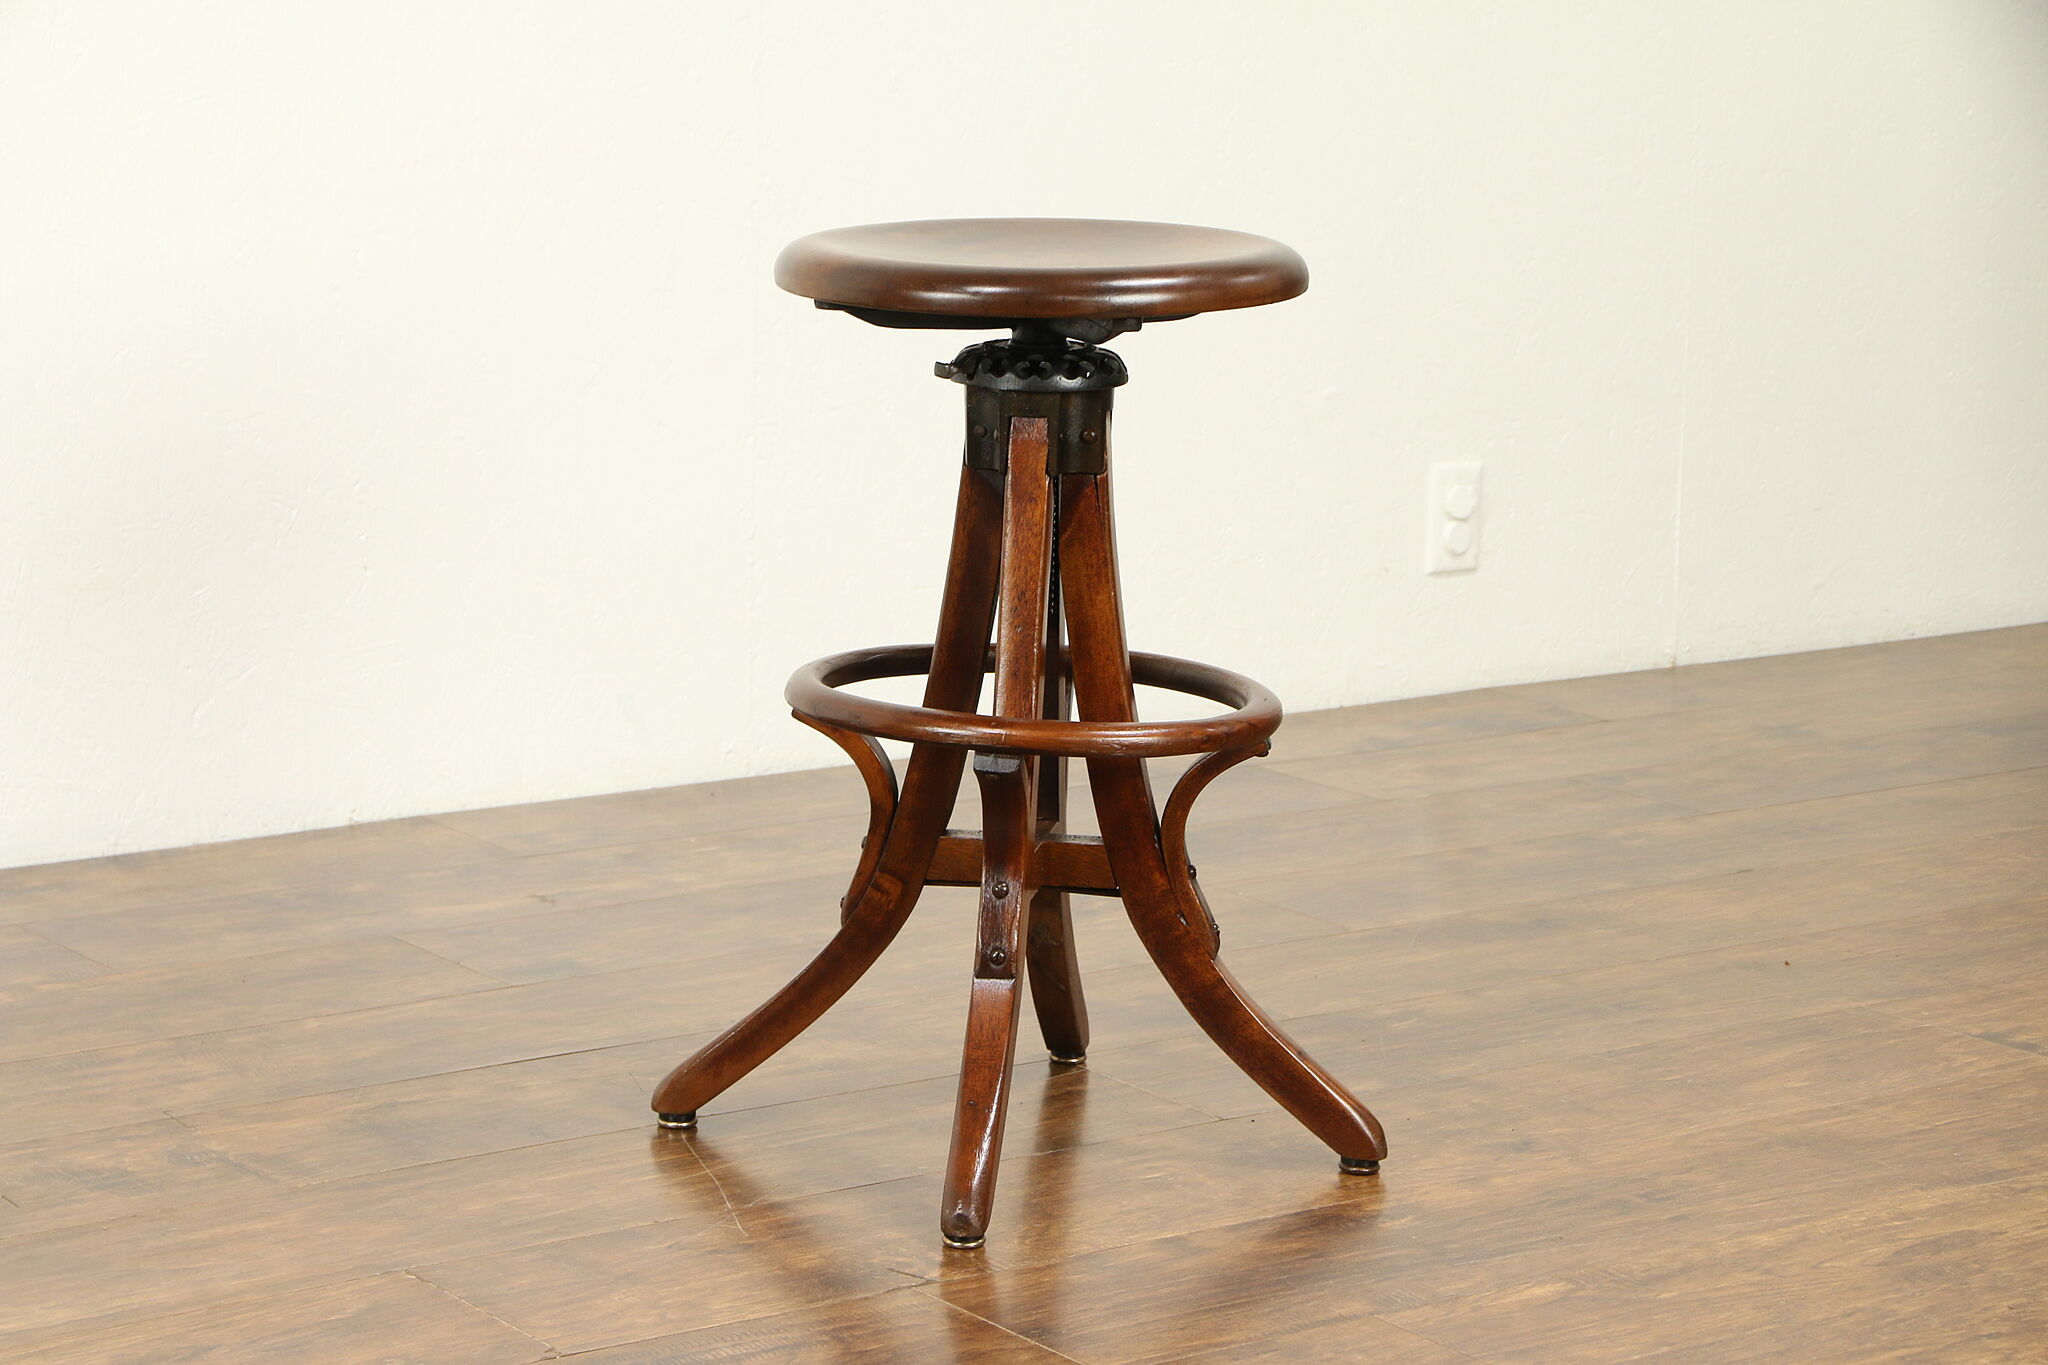 Sensational Architect Drafting Artist Swivel Stool Adjustable Milwaukee Pat 1914 31851 Caraccident5 Cool Chair Designs And Ideas Caraccident5Info